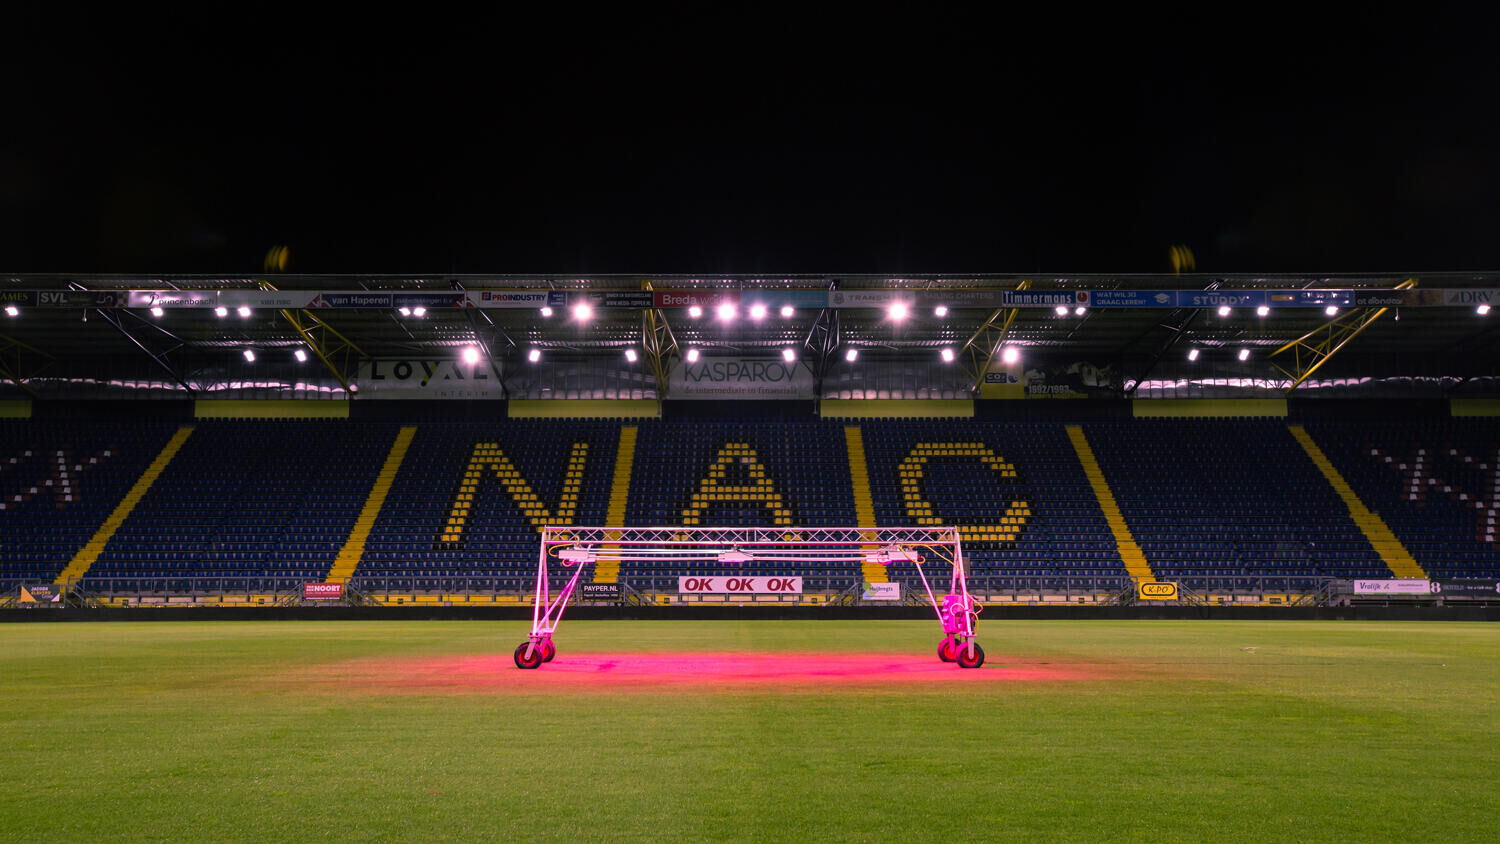 Football club NAC Breda